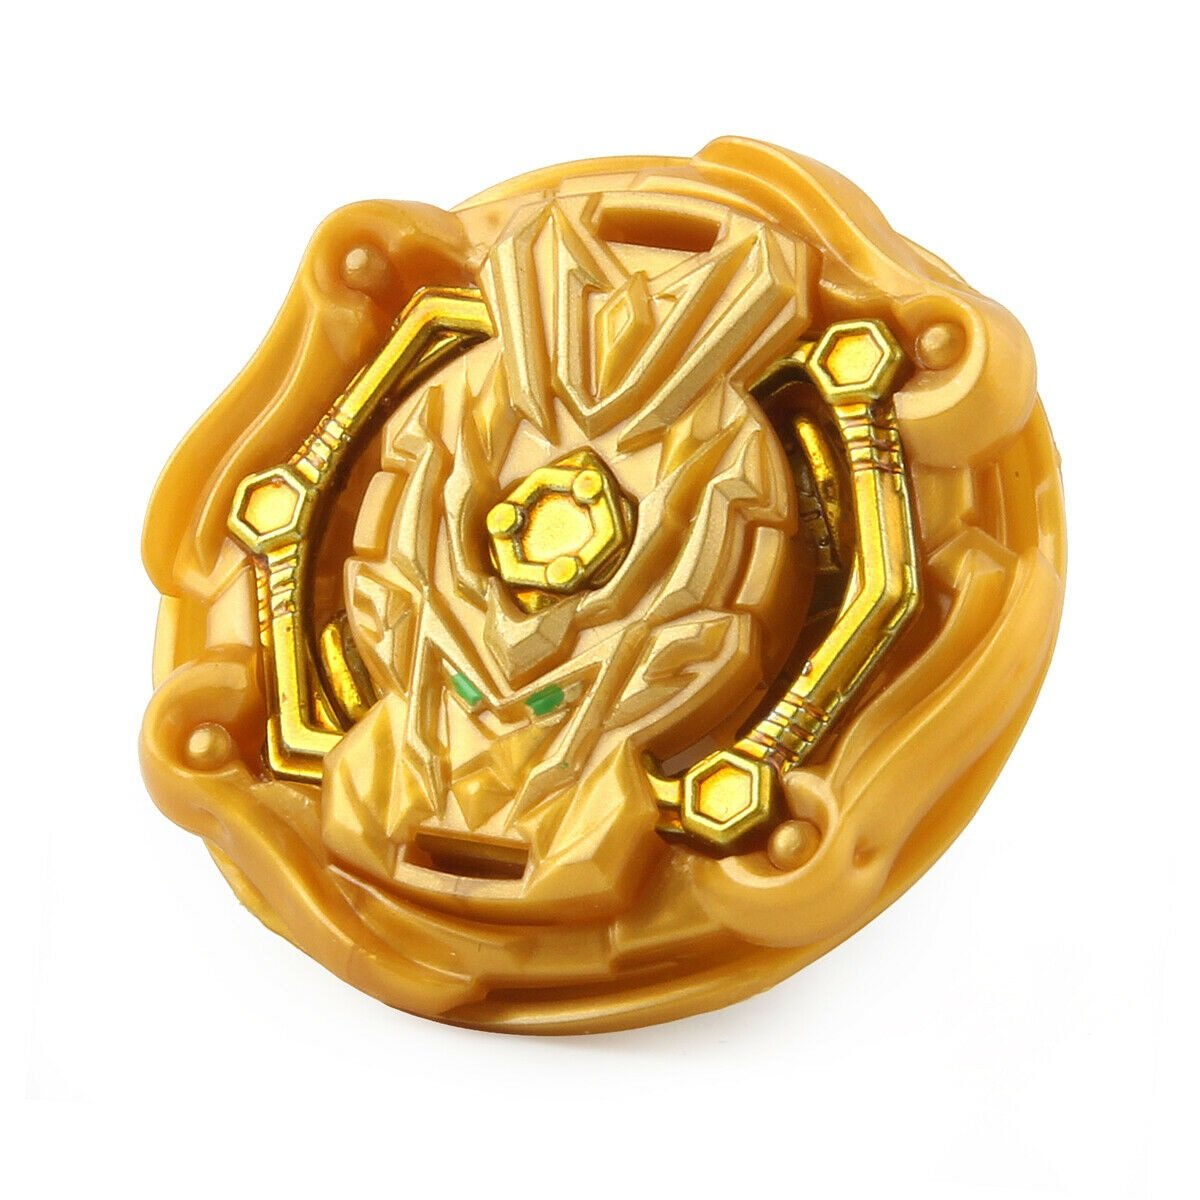 BeyBlade TCHj-140 Gold Cosmo Valkyrie Takara Tomy Action Gyro Spinning Top Toys